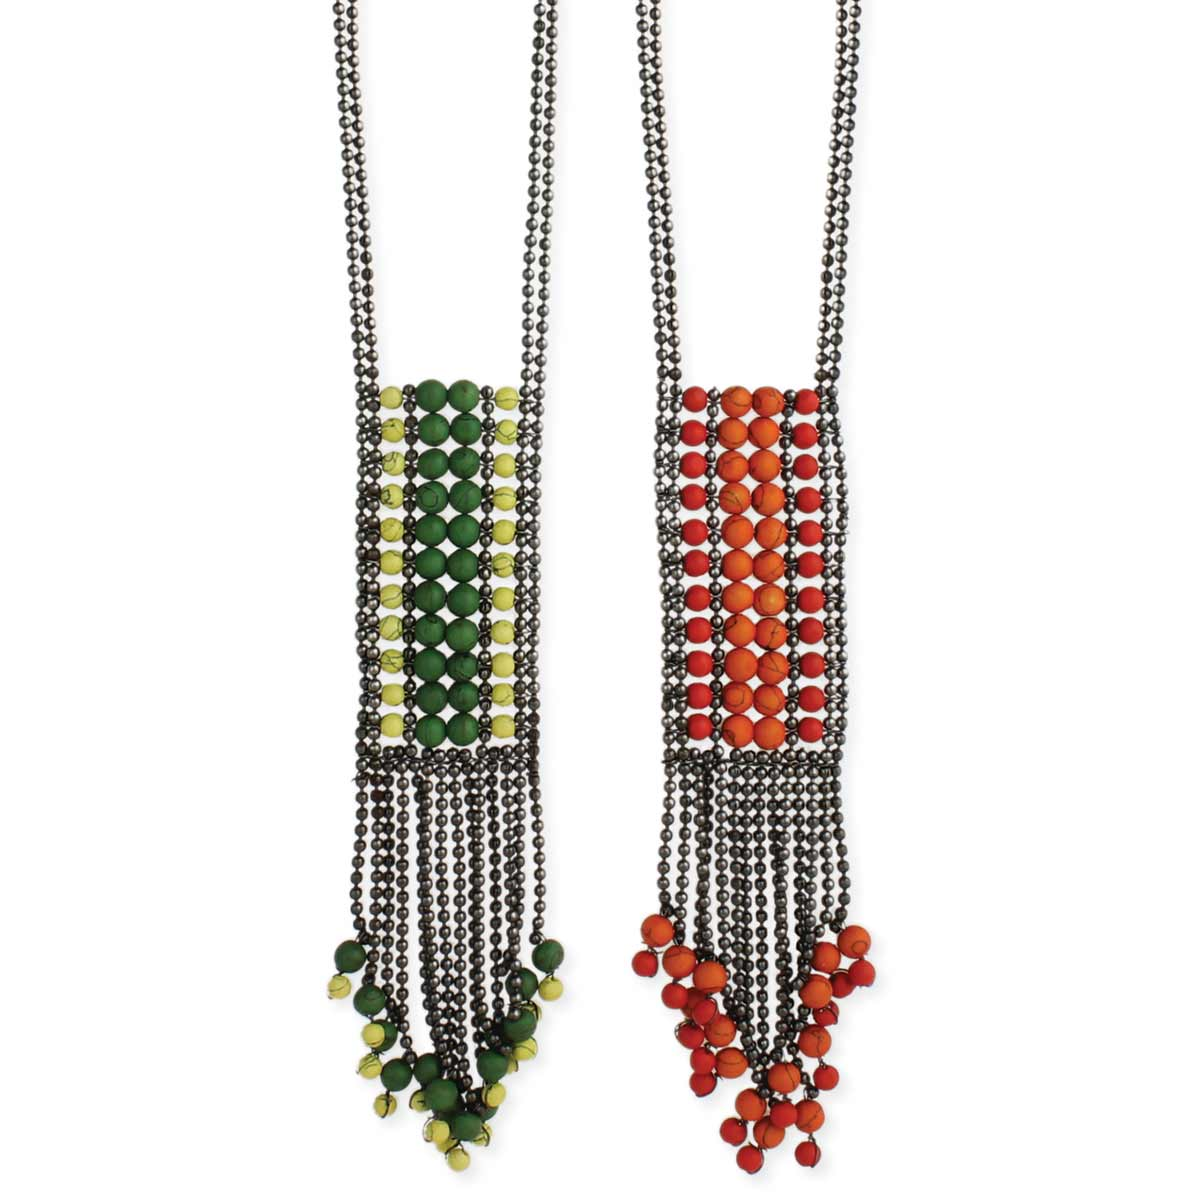 Beaded Fringe Long Necklace